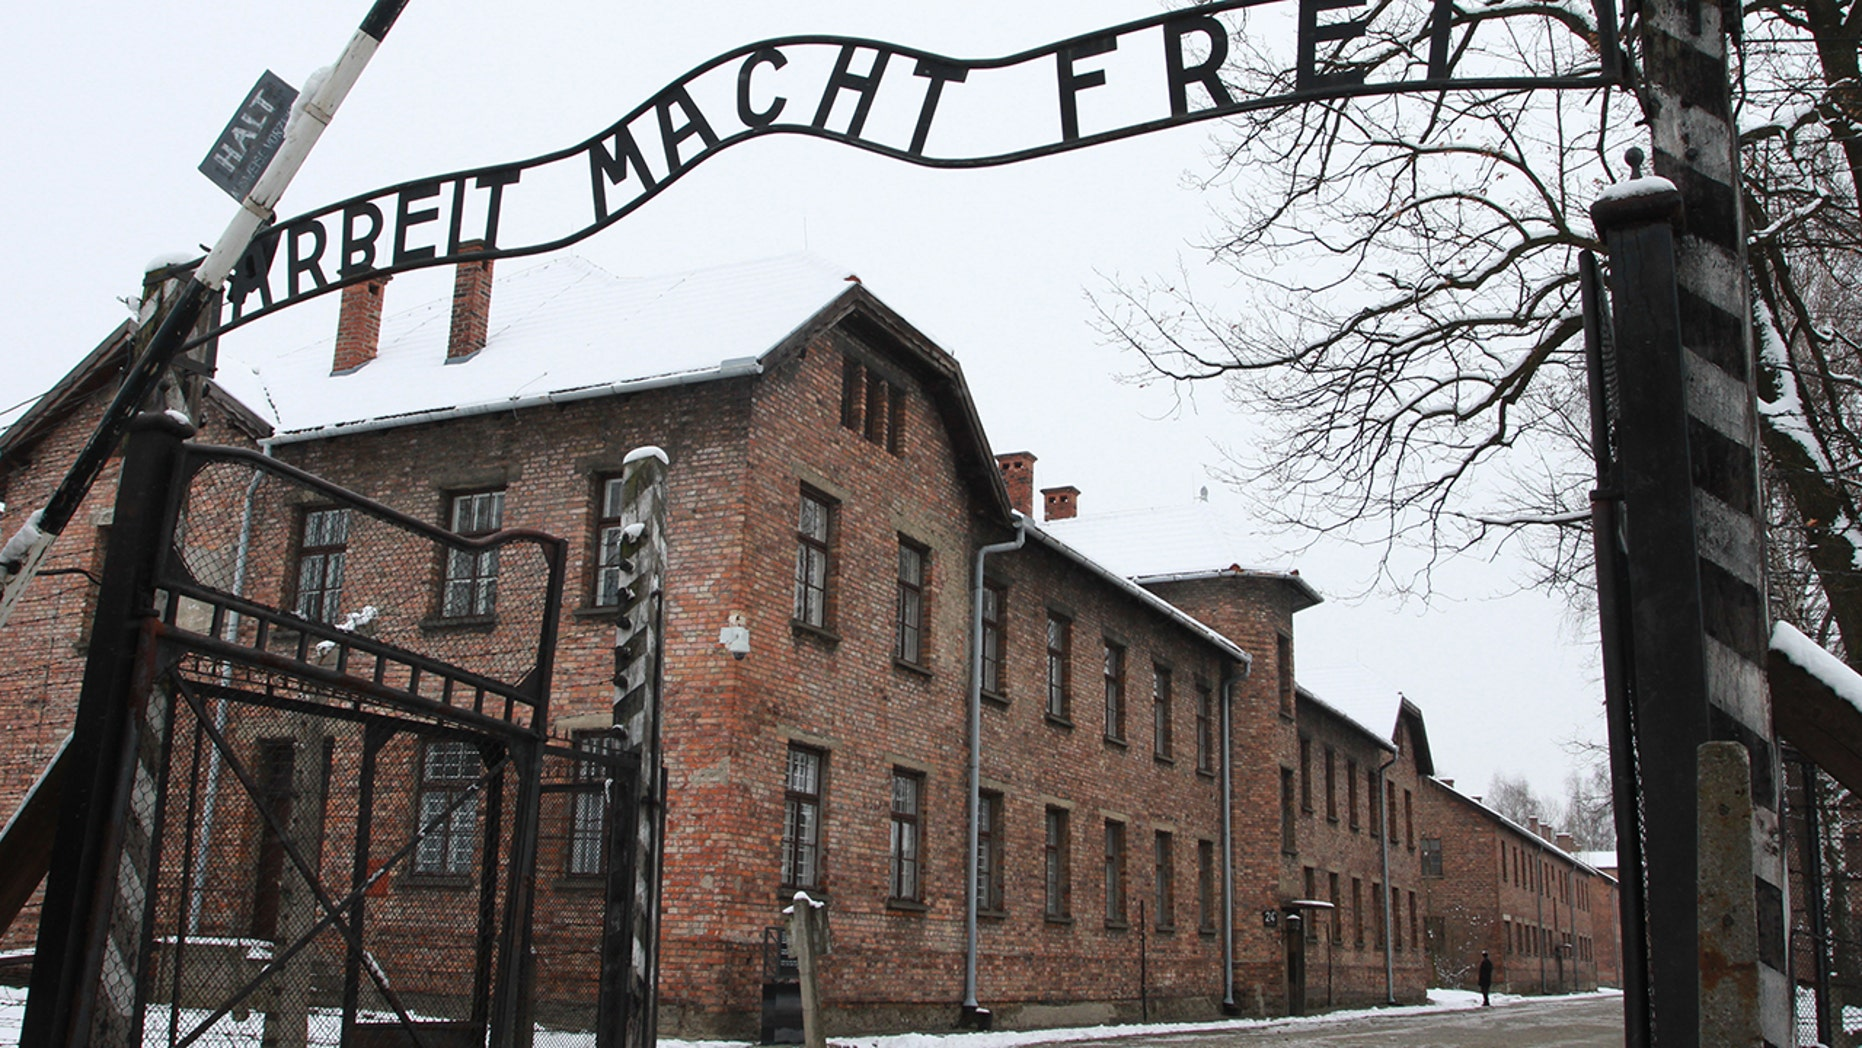 'Arbeit Macht Frei' sign at the former Nazi concentration camp Auschwitz in Oswiecim, Poland. (Photo by Jakub Porzycki/NurPhoto via Getty Images)